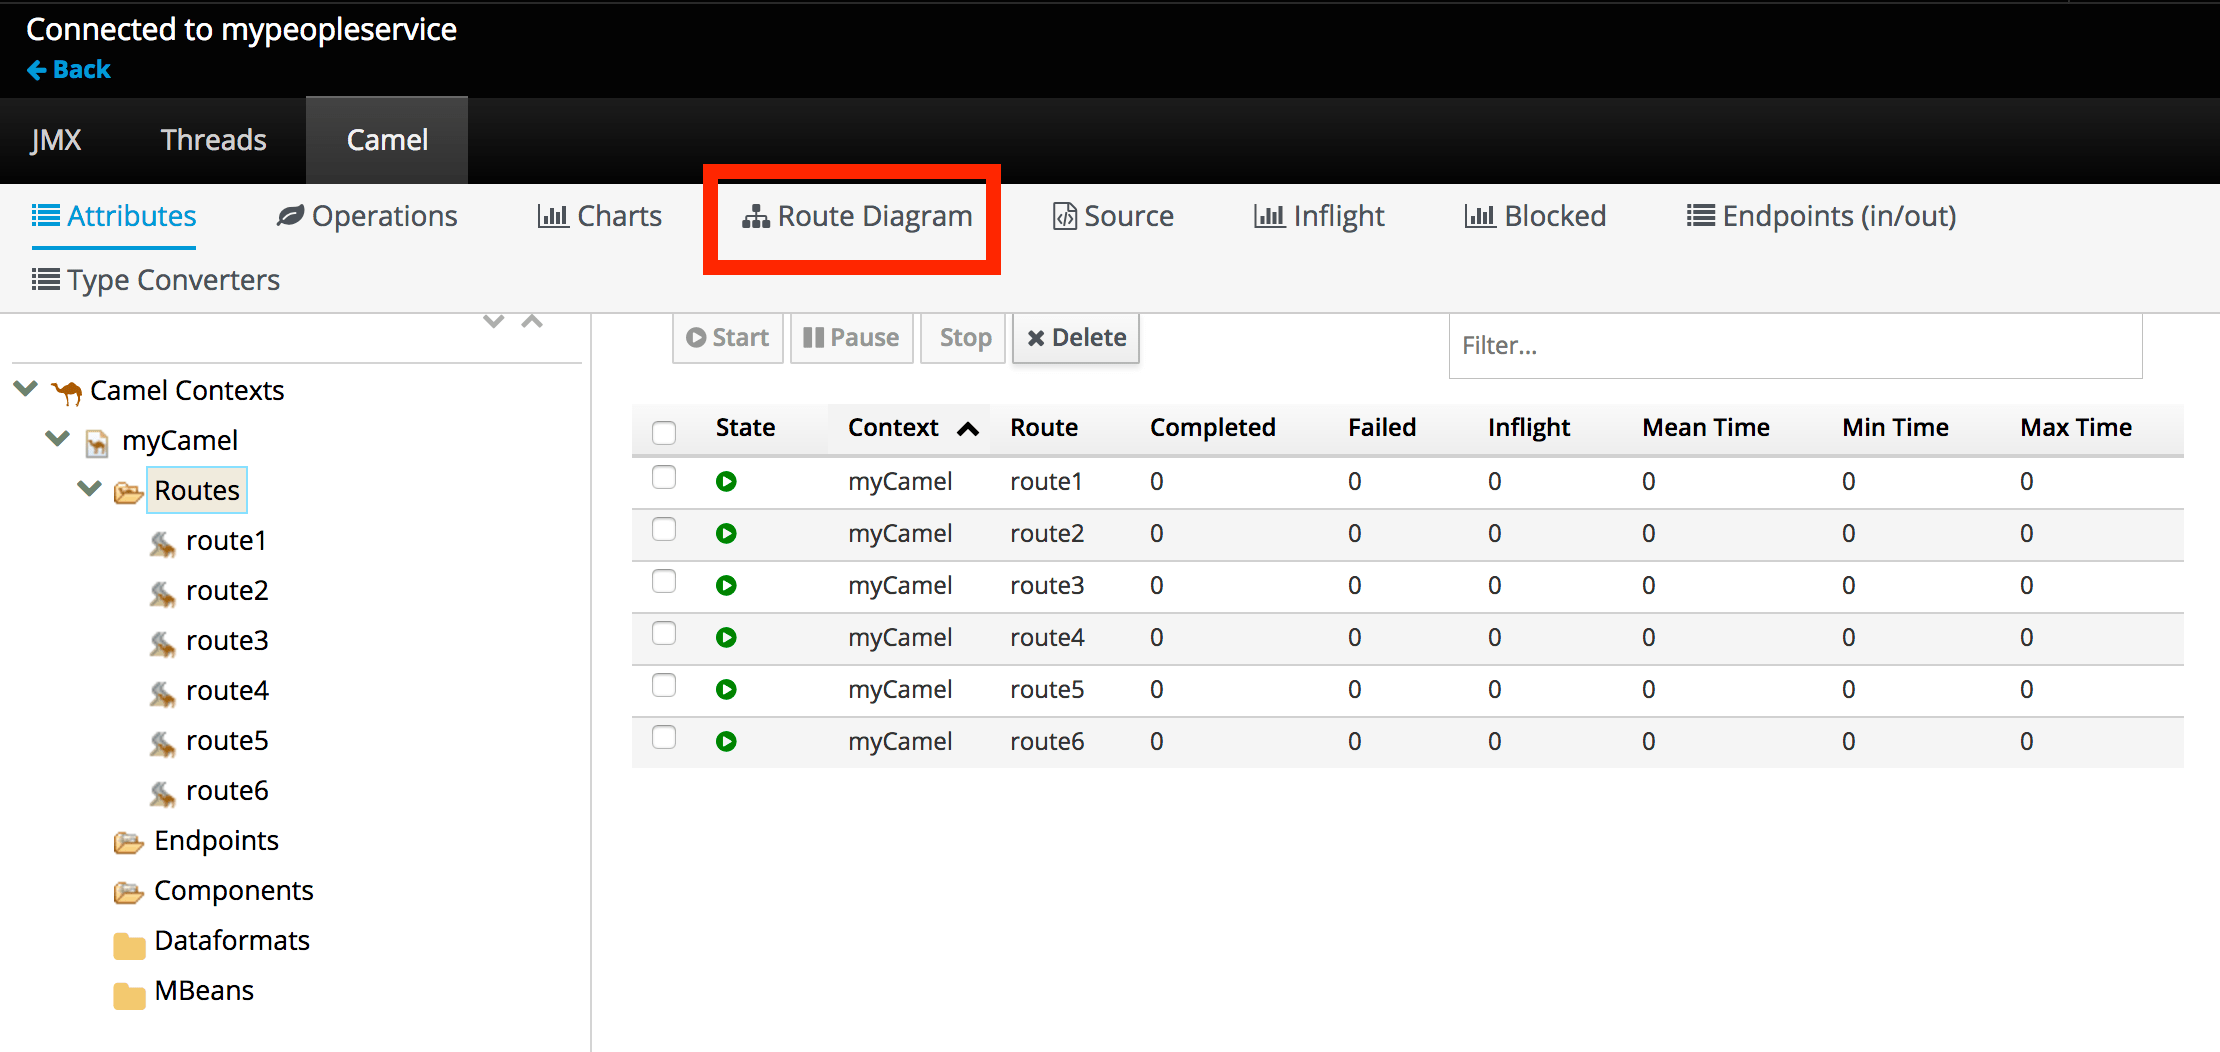 Developing Apis Using Red Hat Openshift And Jboss Fuse